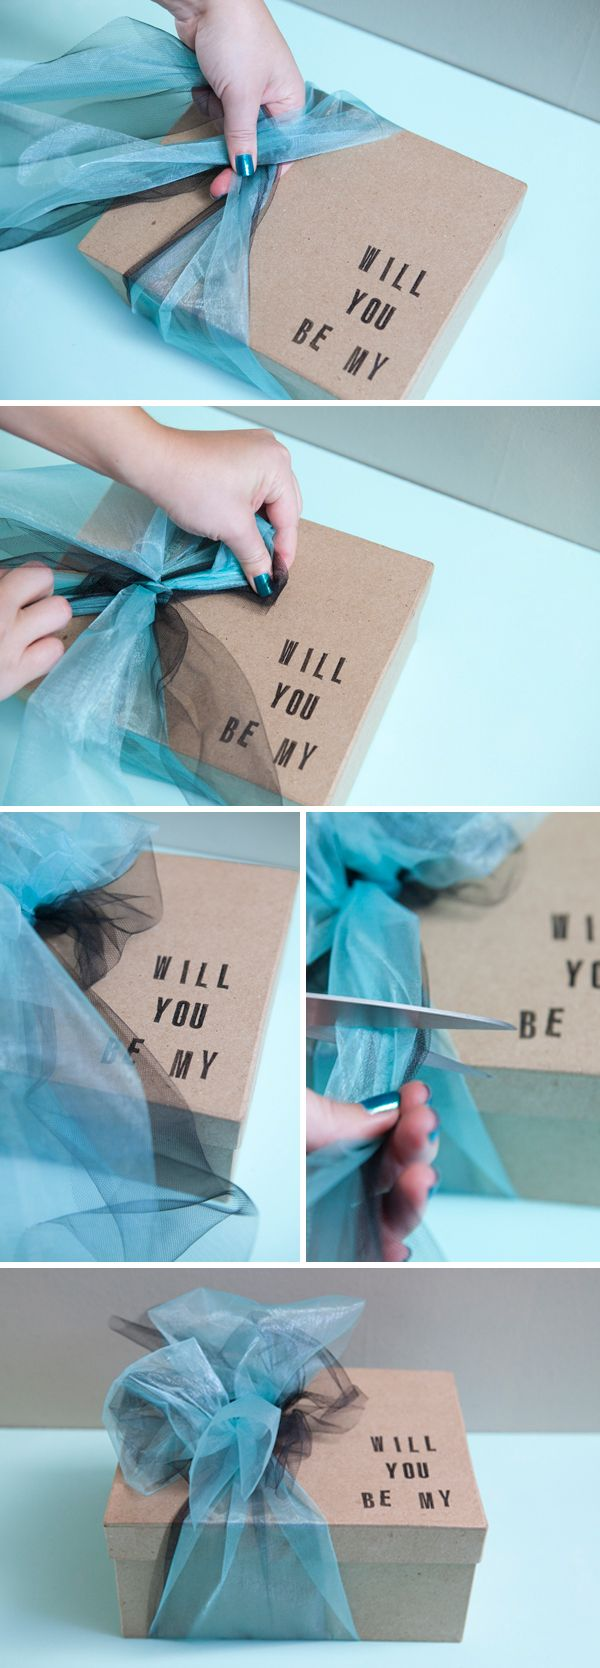 gift ideas for many occasions...Will you be my Bridesmaid? present box SomethingTurquoise.com Not what I would put inside, but interesting idea